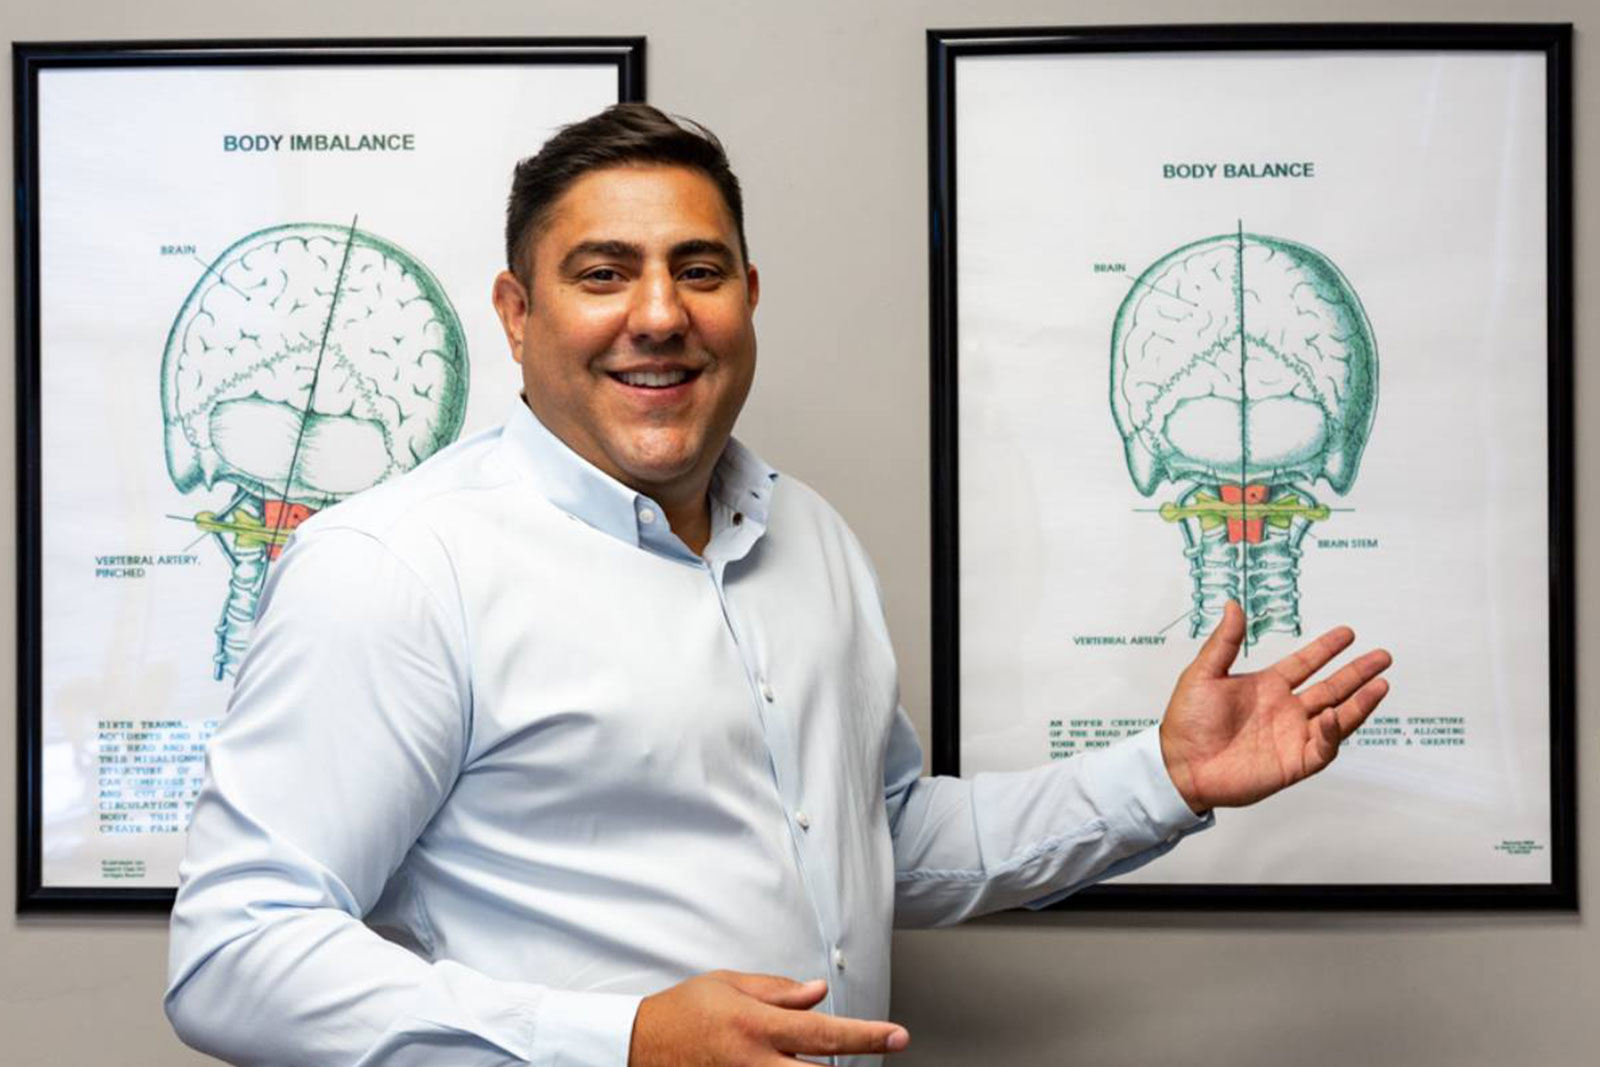 The Lifestyle Chiropractic